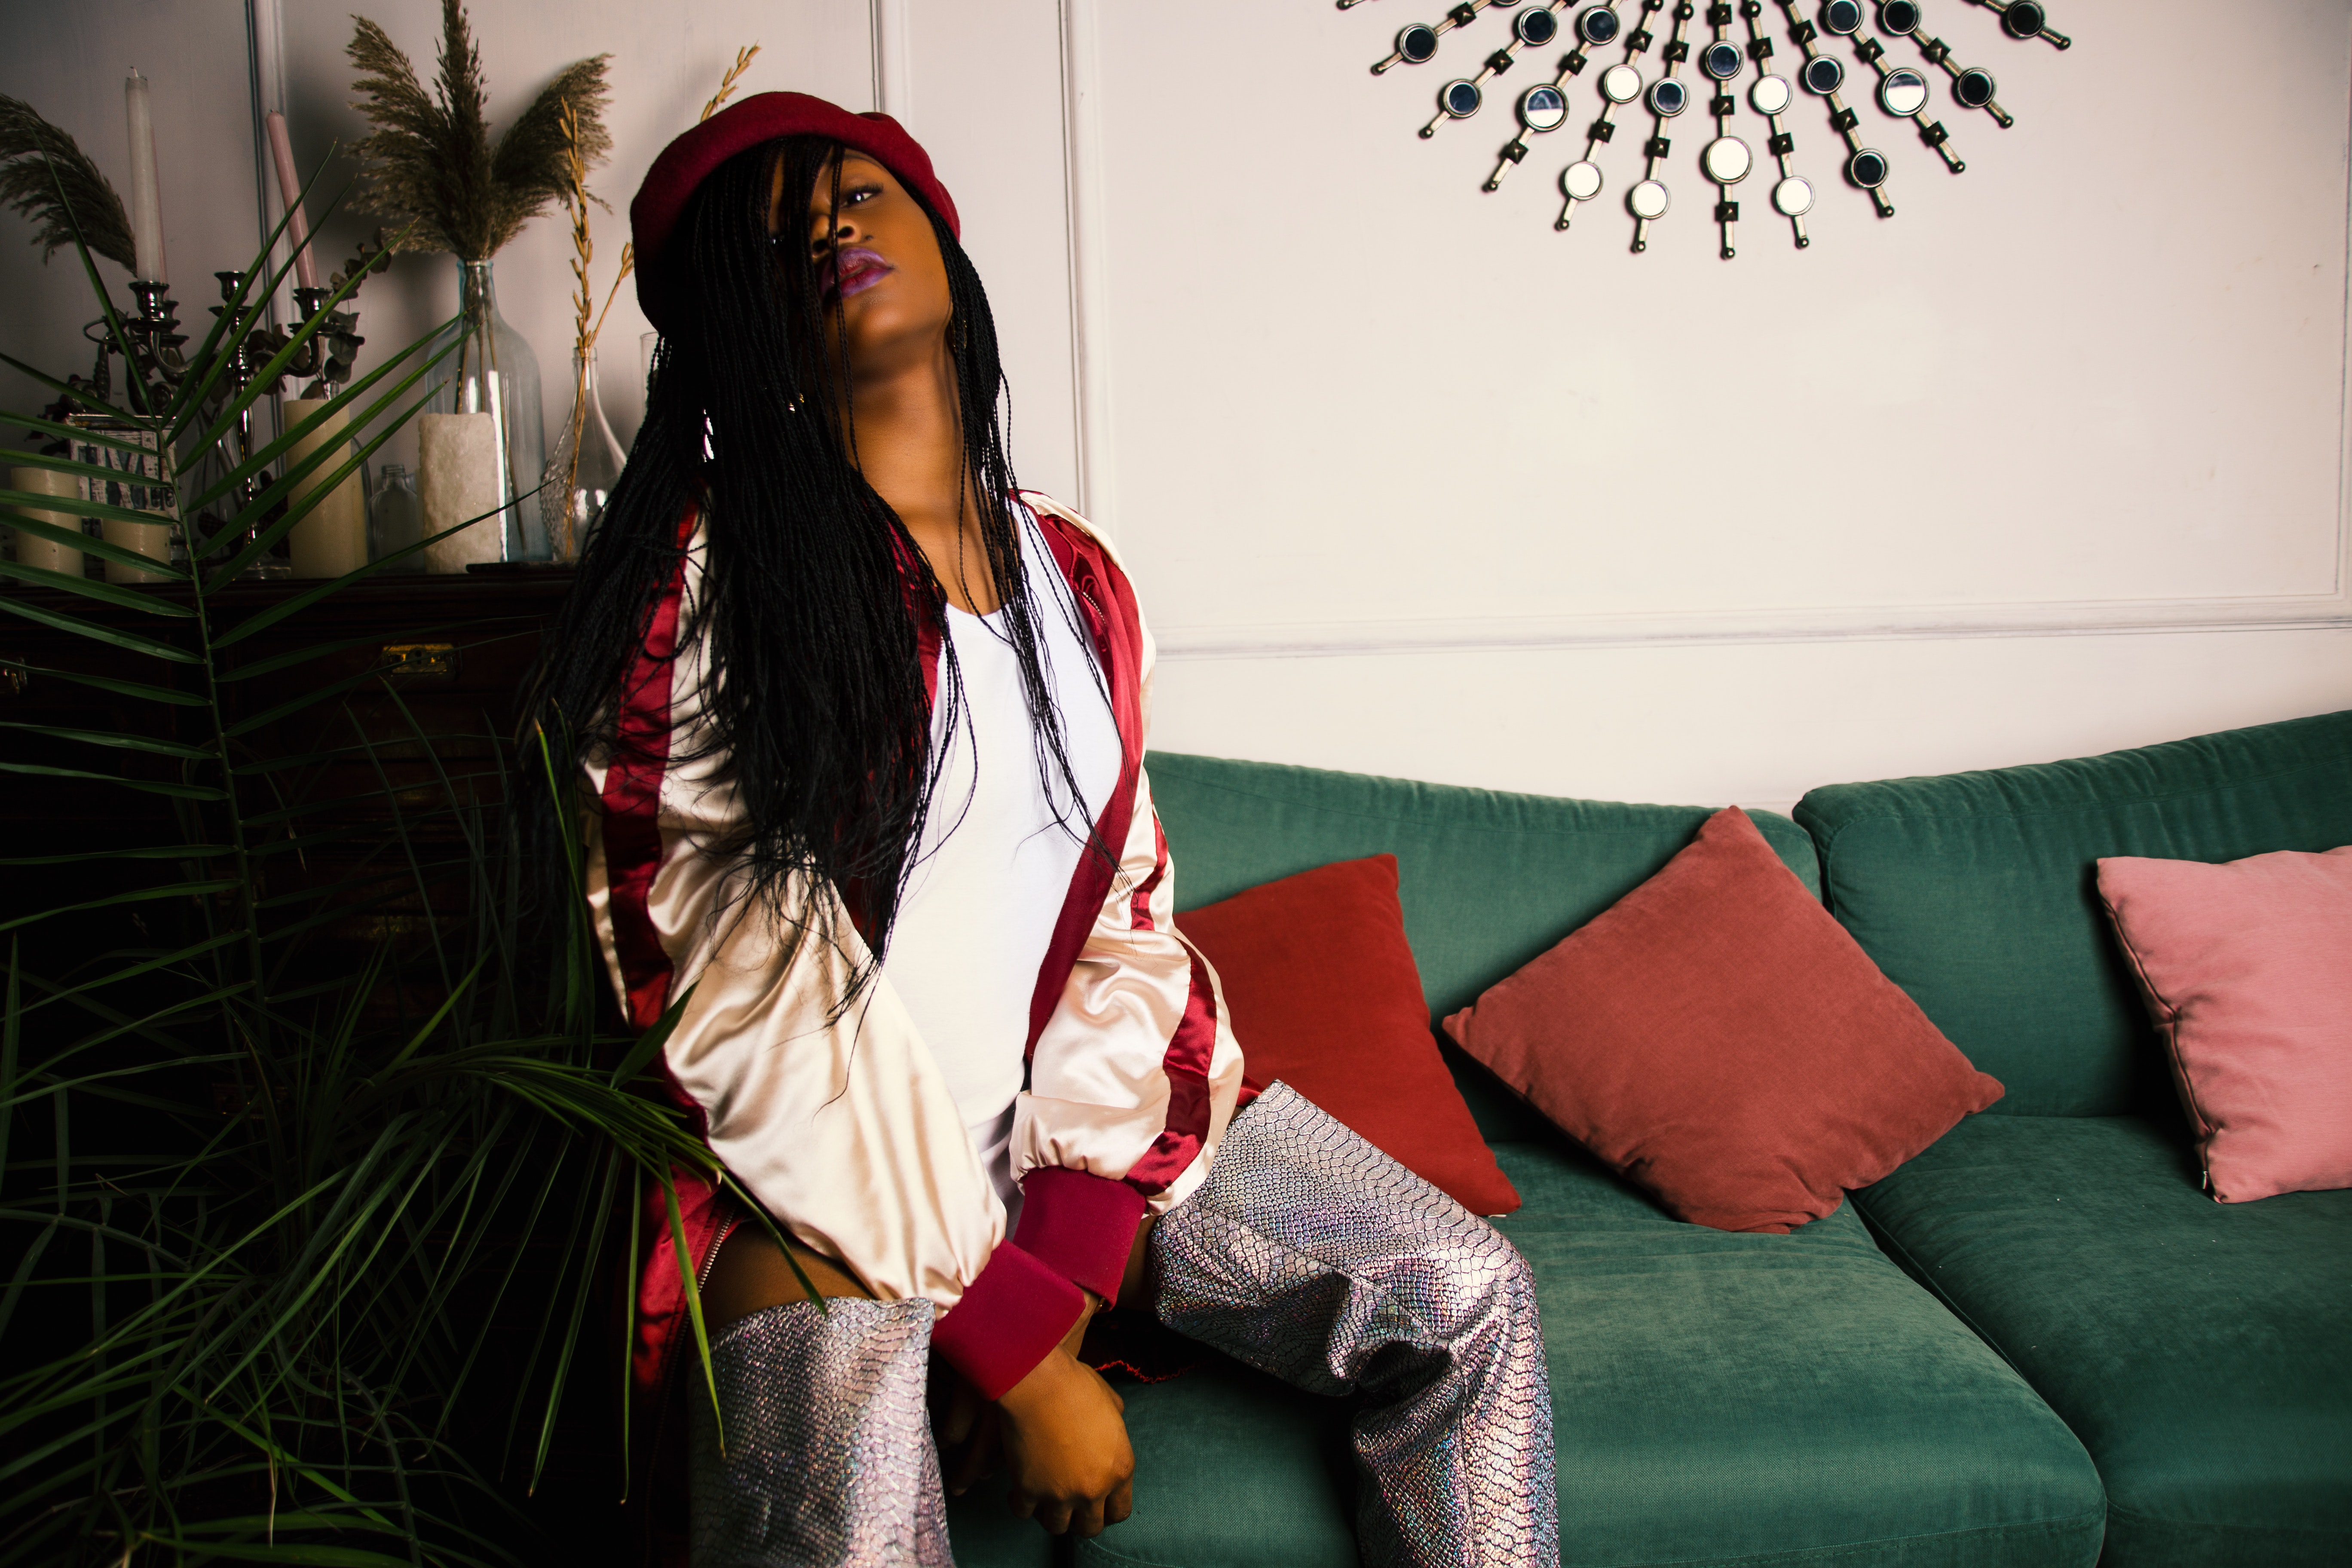 Woman in White and Red Jacket Sitting on Green Couch, Adult, Photoshoot, Wear, Throwpillows, HQ Photo